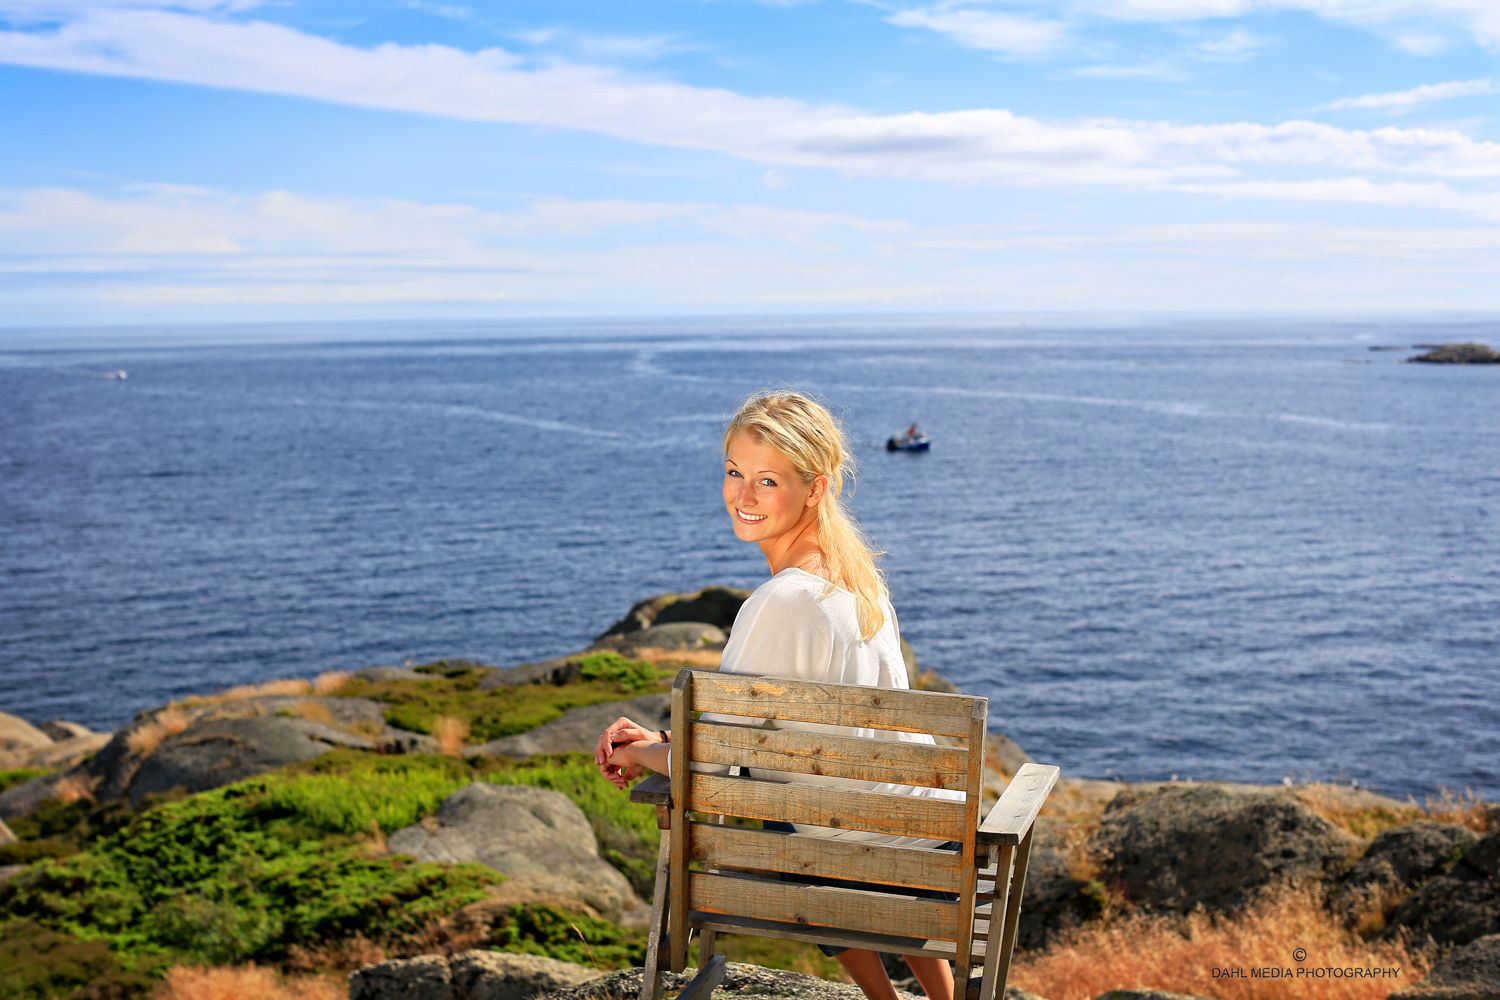 Skagerrak: Closest Neighbor    Vaction in the open ocean. Take a chair with you to the outer area outside of the lighthouse. Here you can sit and enjoy the idea of living on Skagerrak.